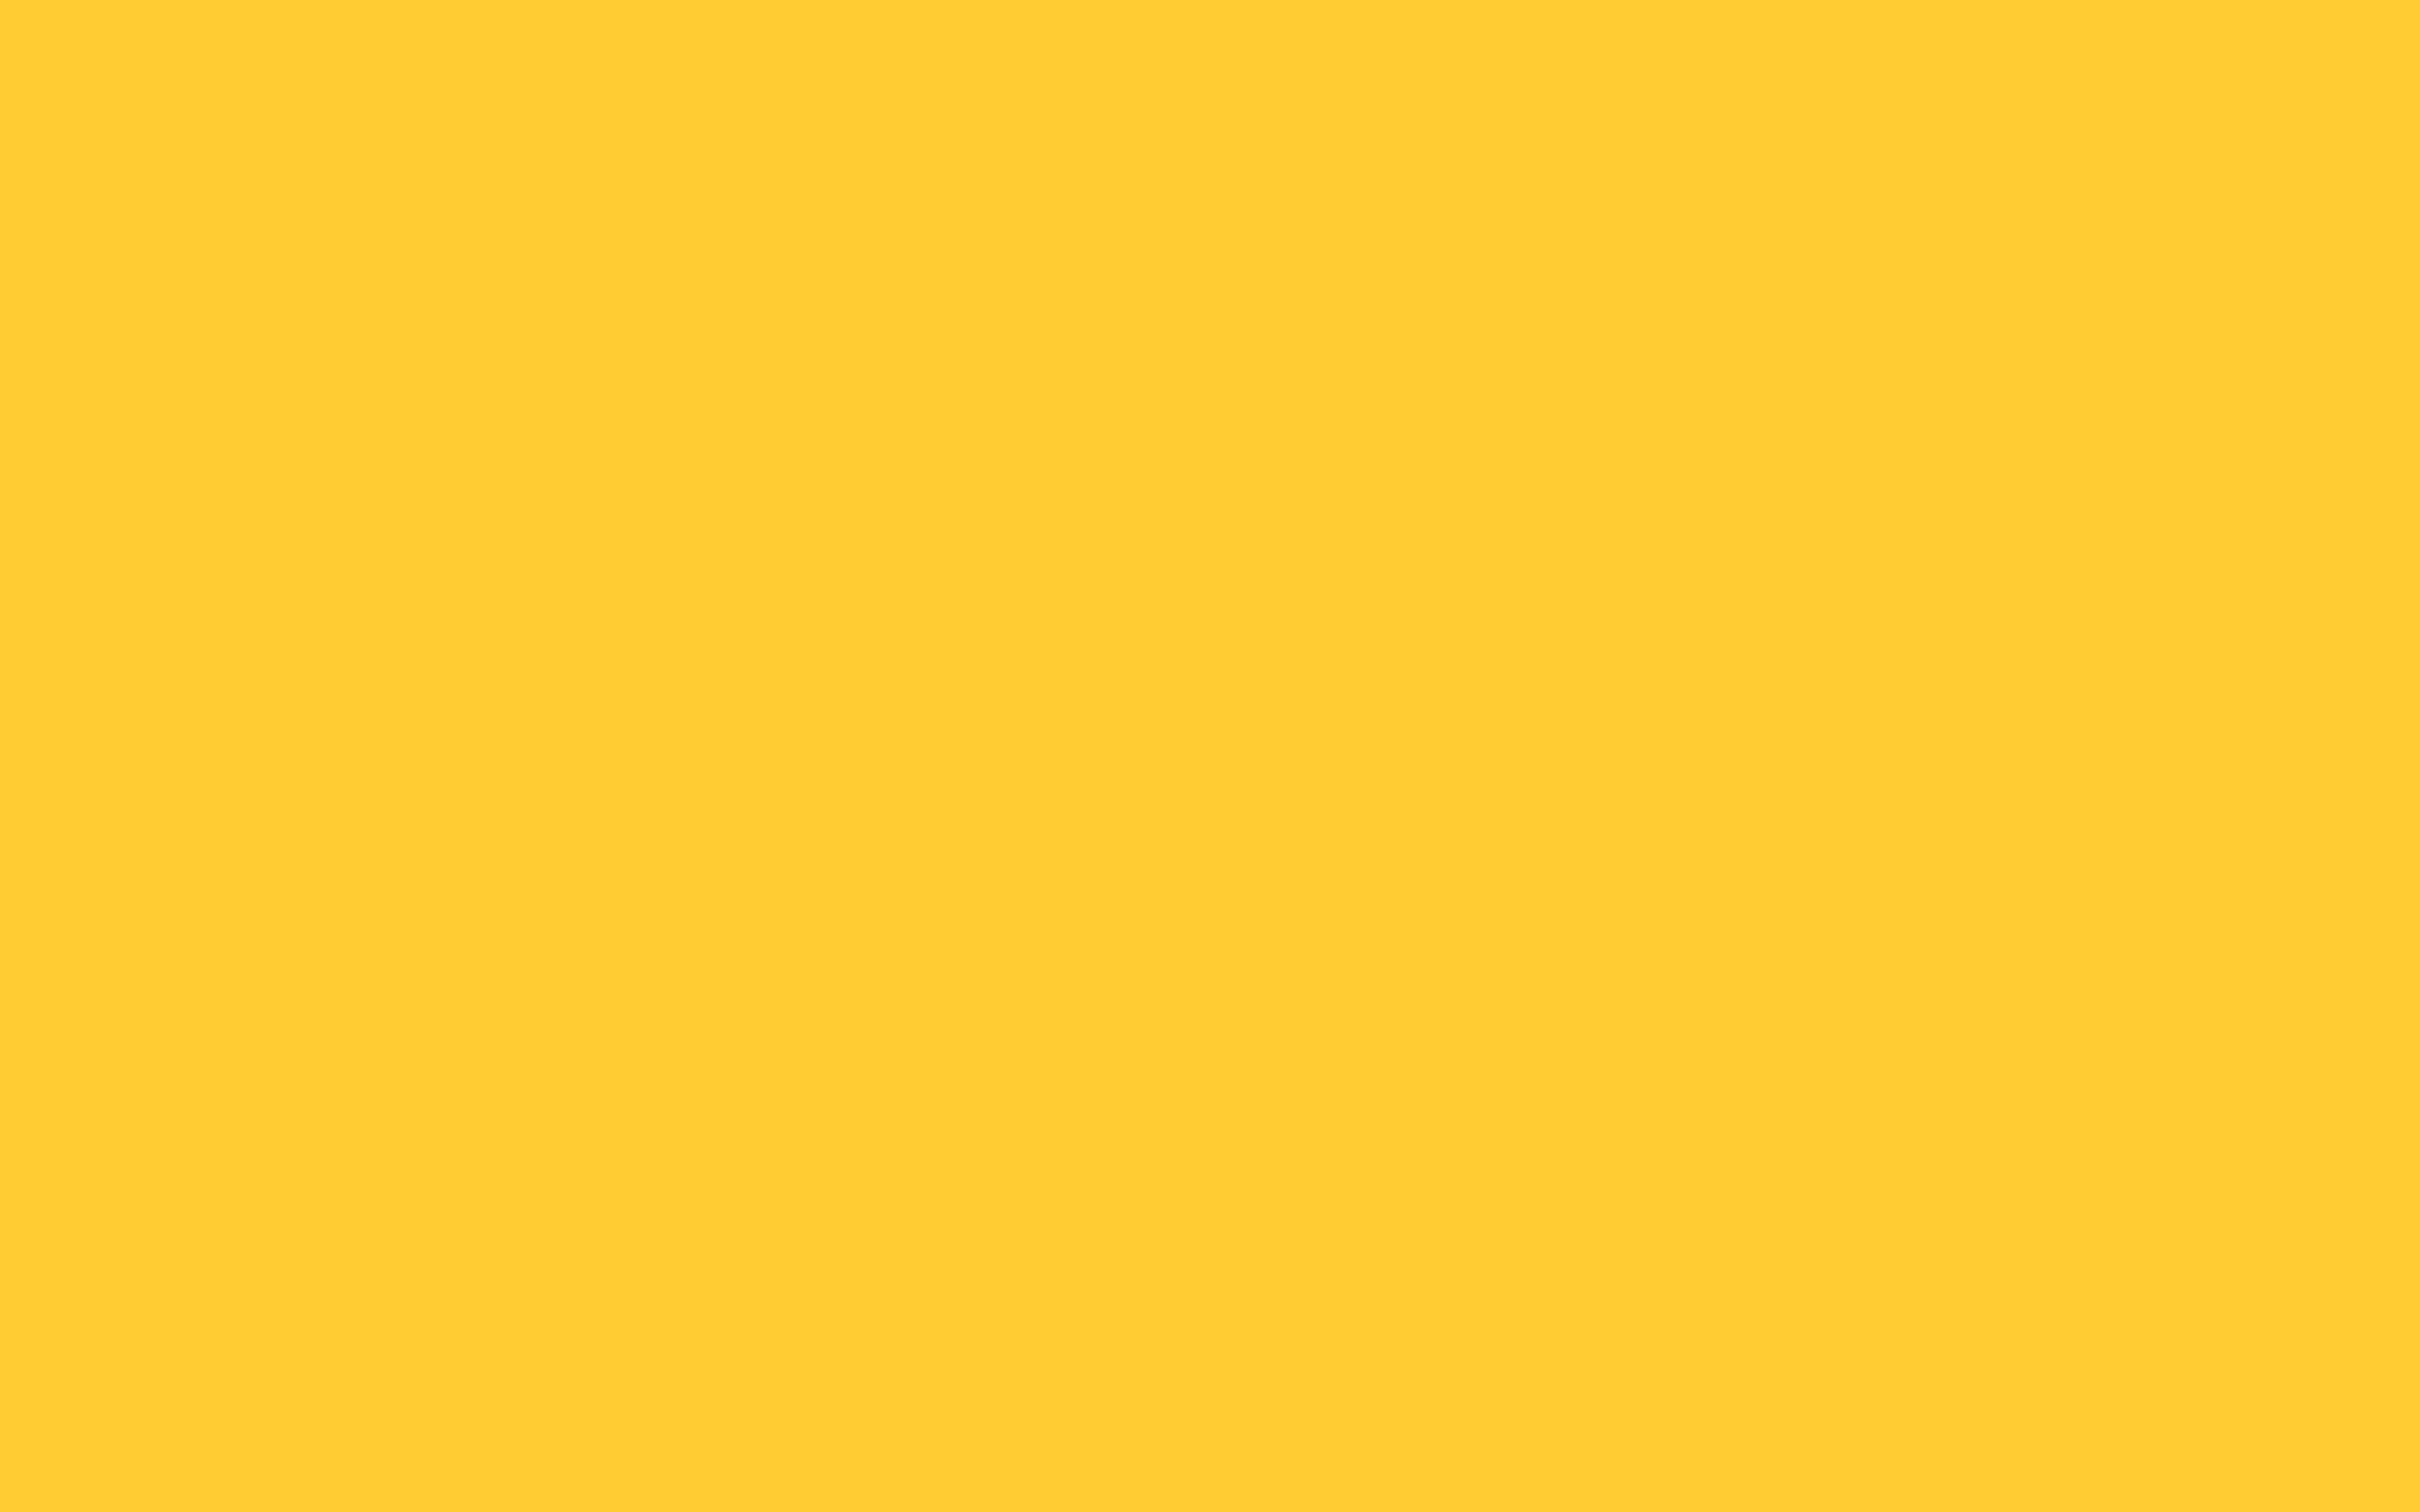 2880x1800 Sunglow Solid Color Background